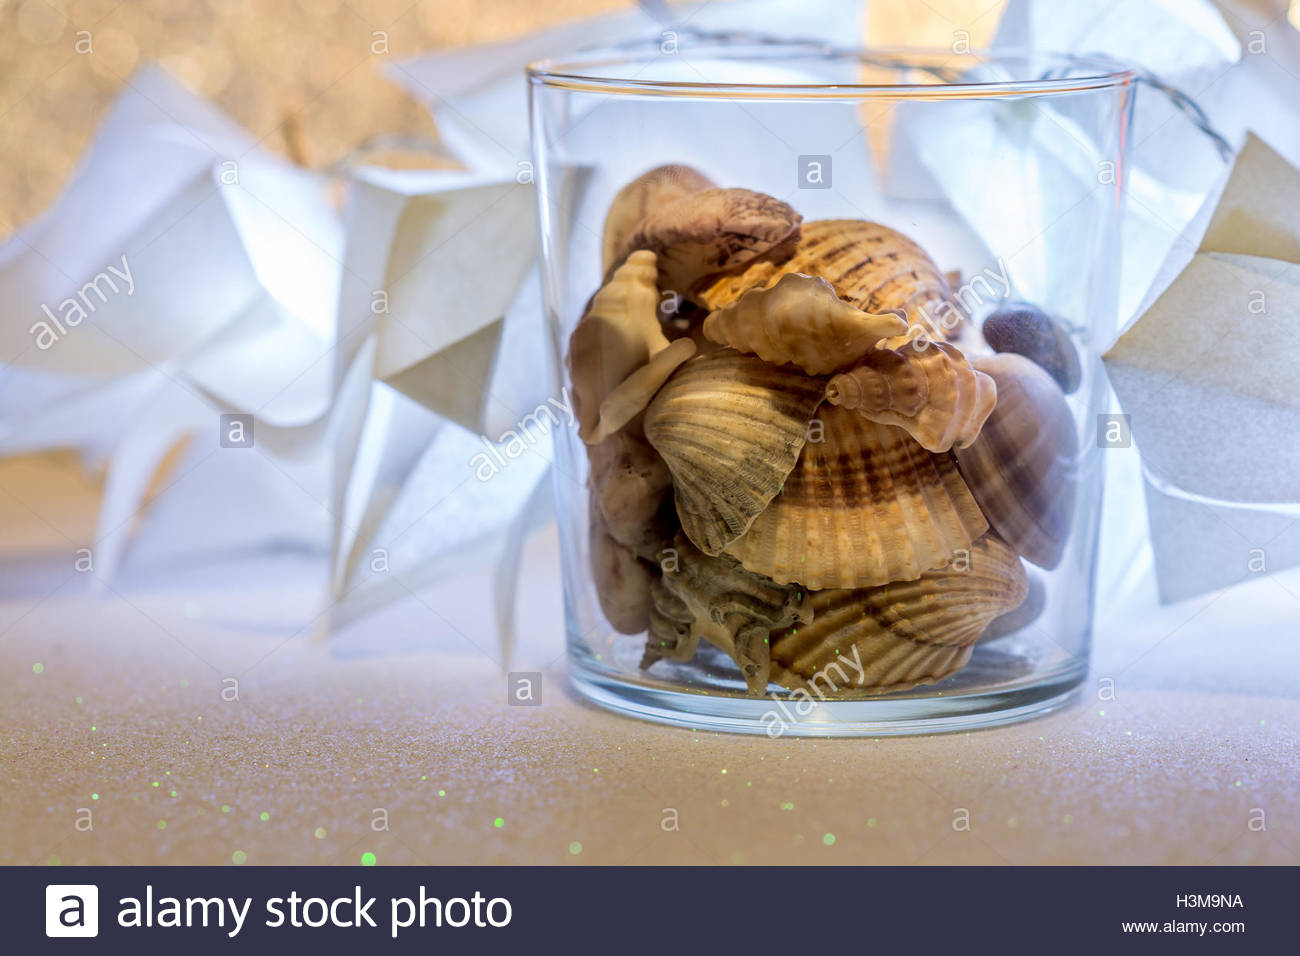 Sea shells on lighted background, these sea shells are very common on Spanish beaches, and can be found on many - Stock Image